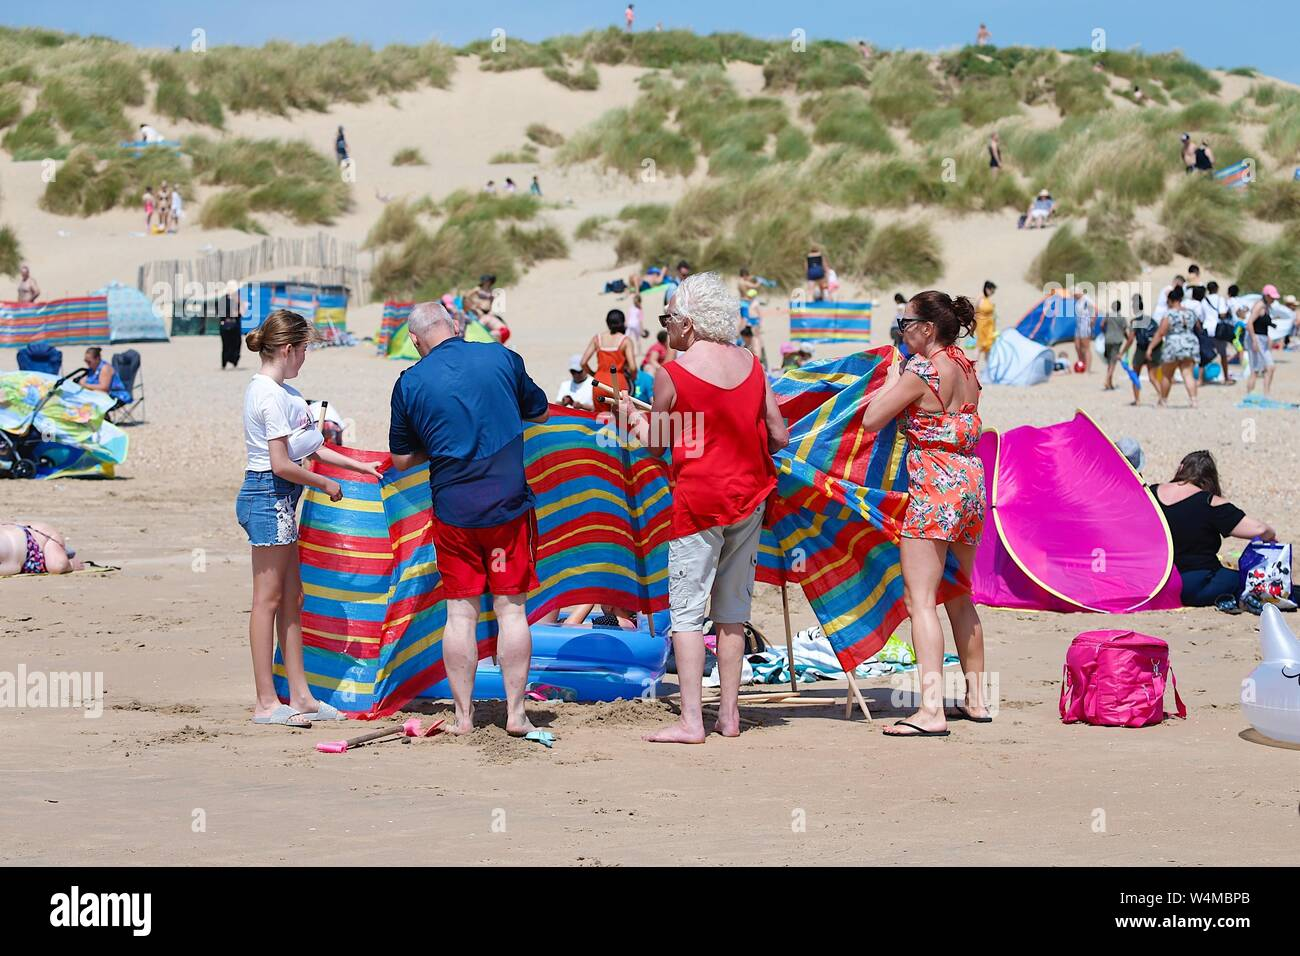 Camber, East Sussex, UK. 24 Jul, 2019. UK Weather: A welcome breeze greets these people at the Camber Sands beach in East Sussex on a very hot and sunny morning. ©Paul Lawrenson 2019, Photo Credit: Paul Lawrenson/Alamy Live News Stock Photo